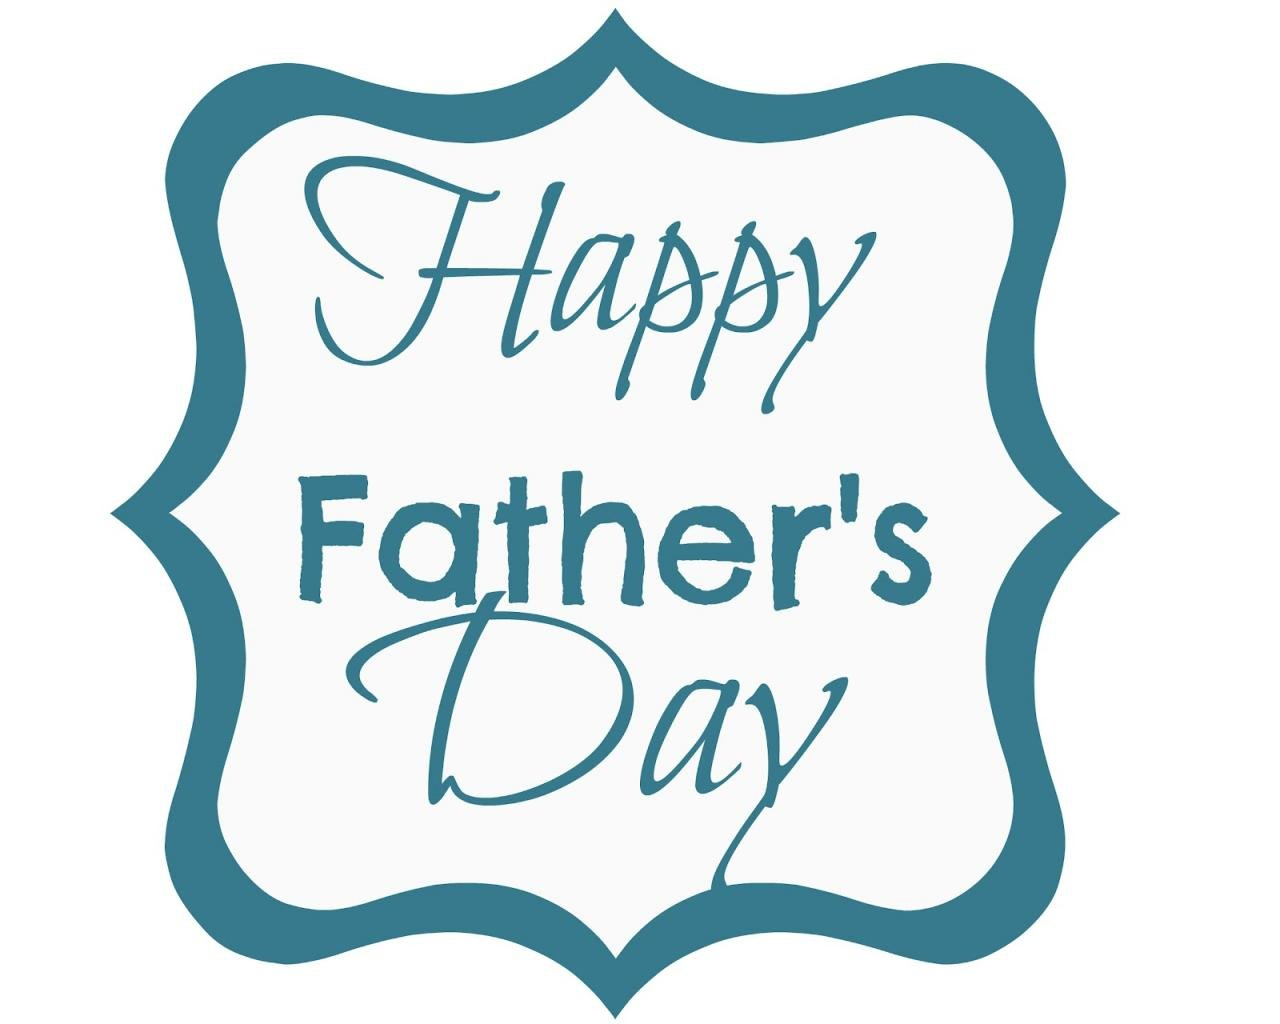 Free Download Father S Day Background Id Happy Father S Day Clip Art Free 1280x1024 Wallpaper Teahub Io